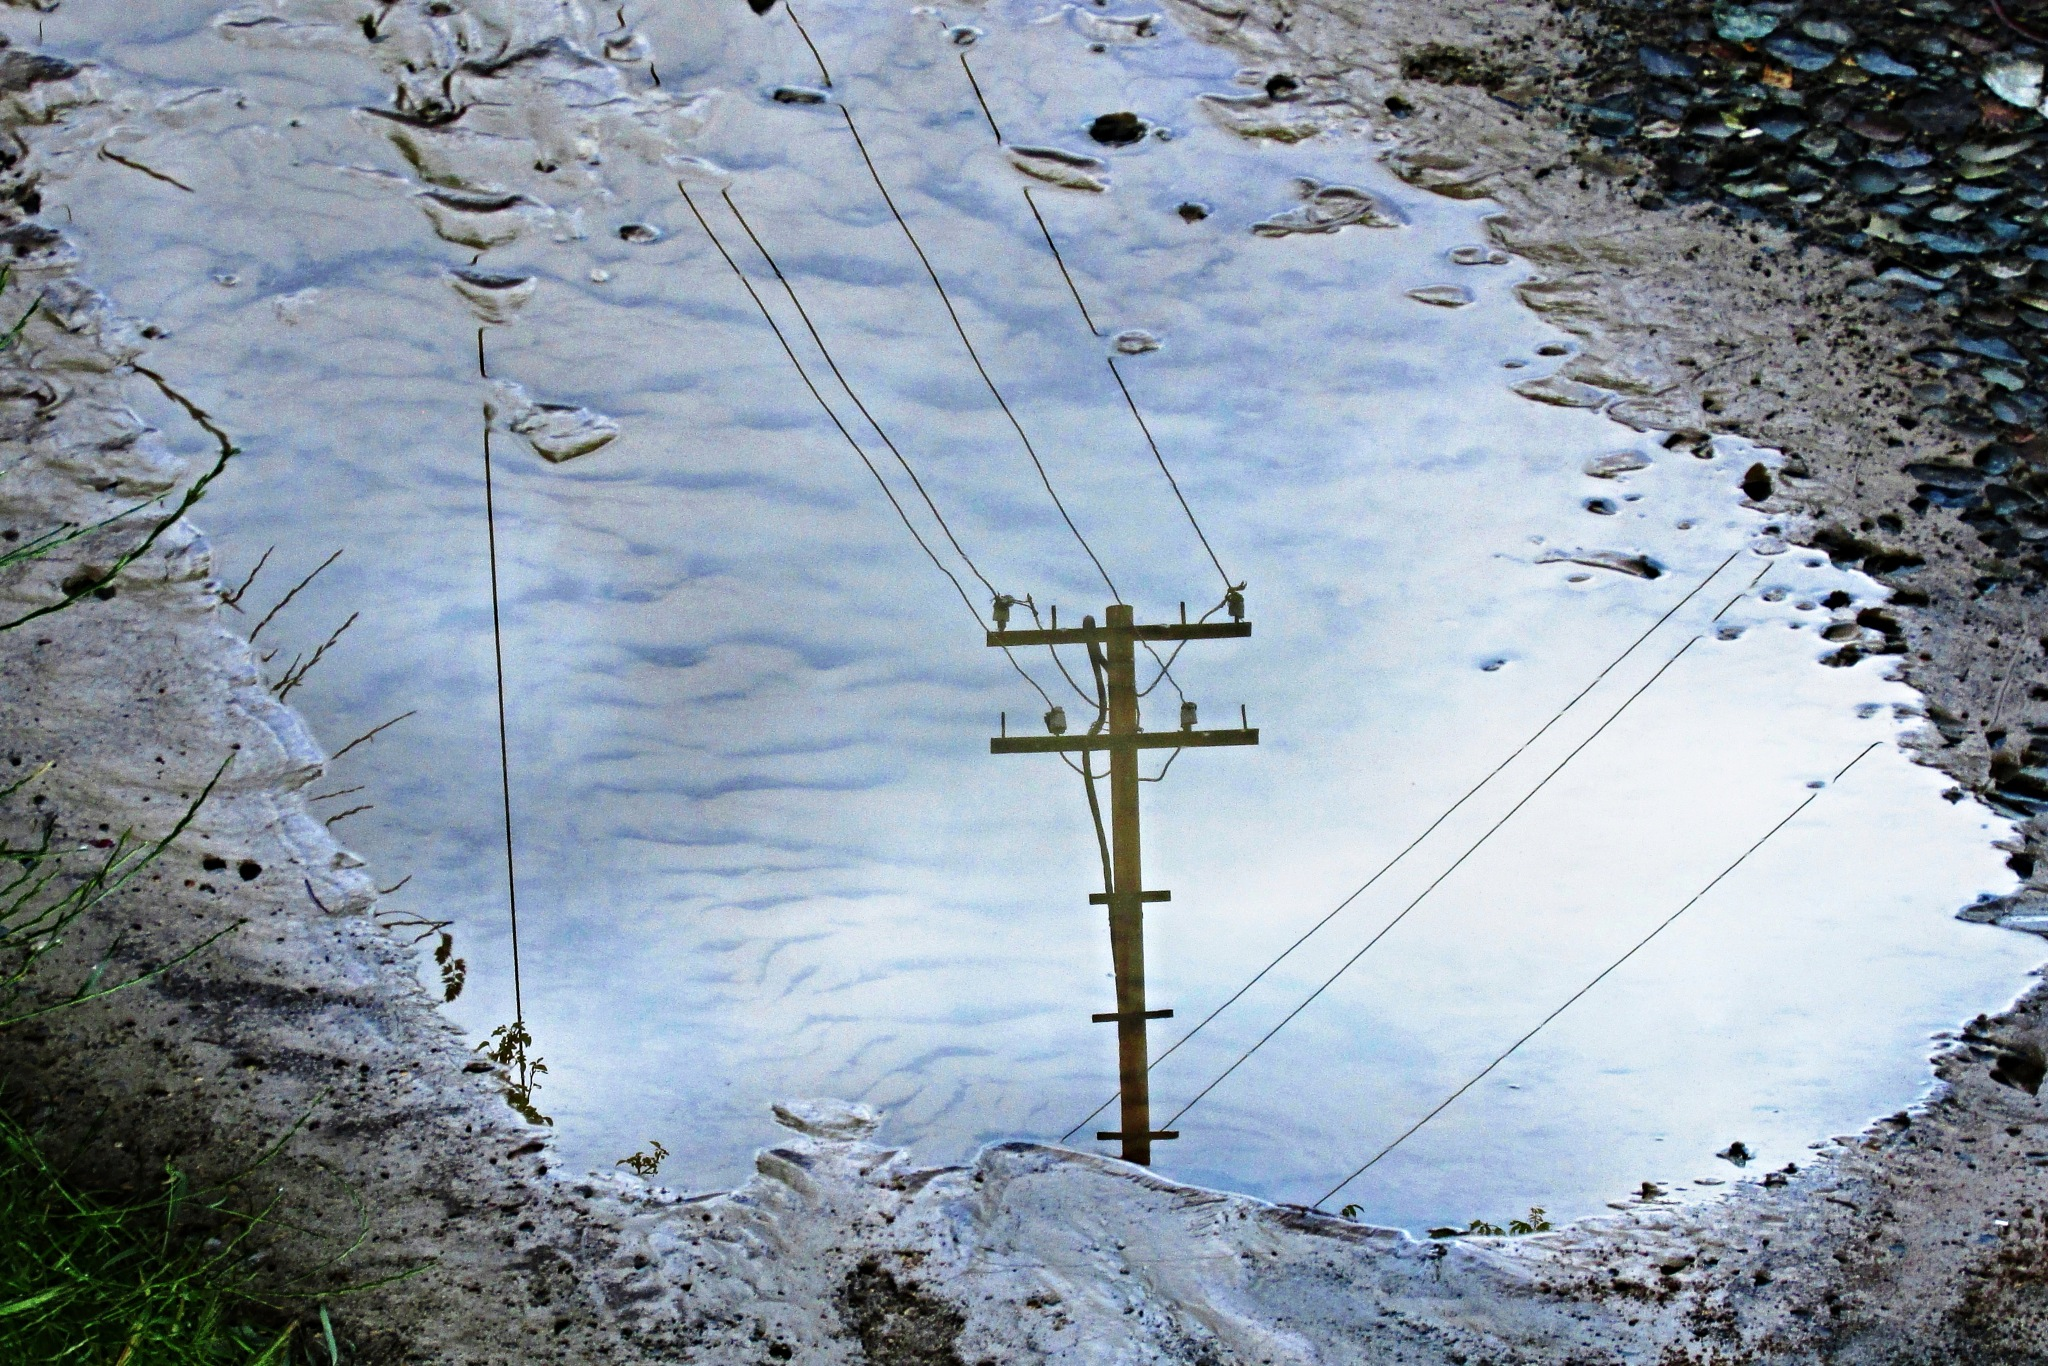 A Drowned Pole in a Puddle. by marcel cintalan